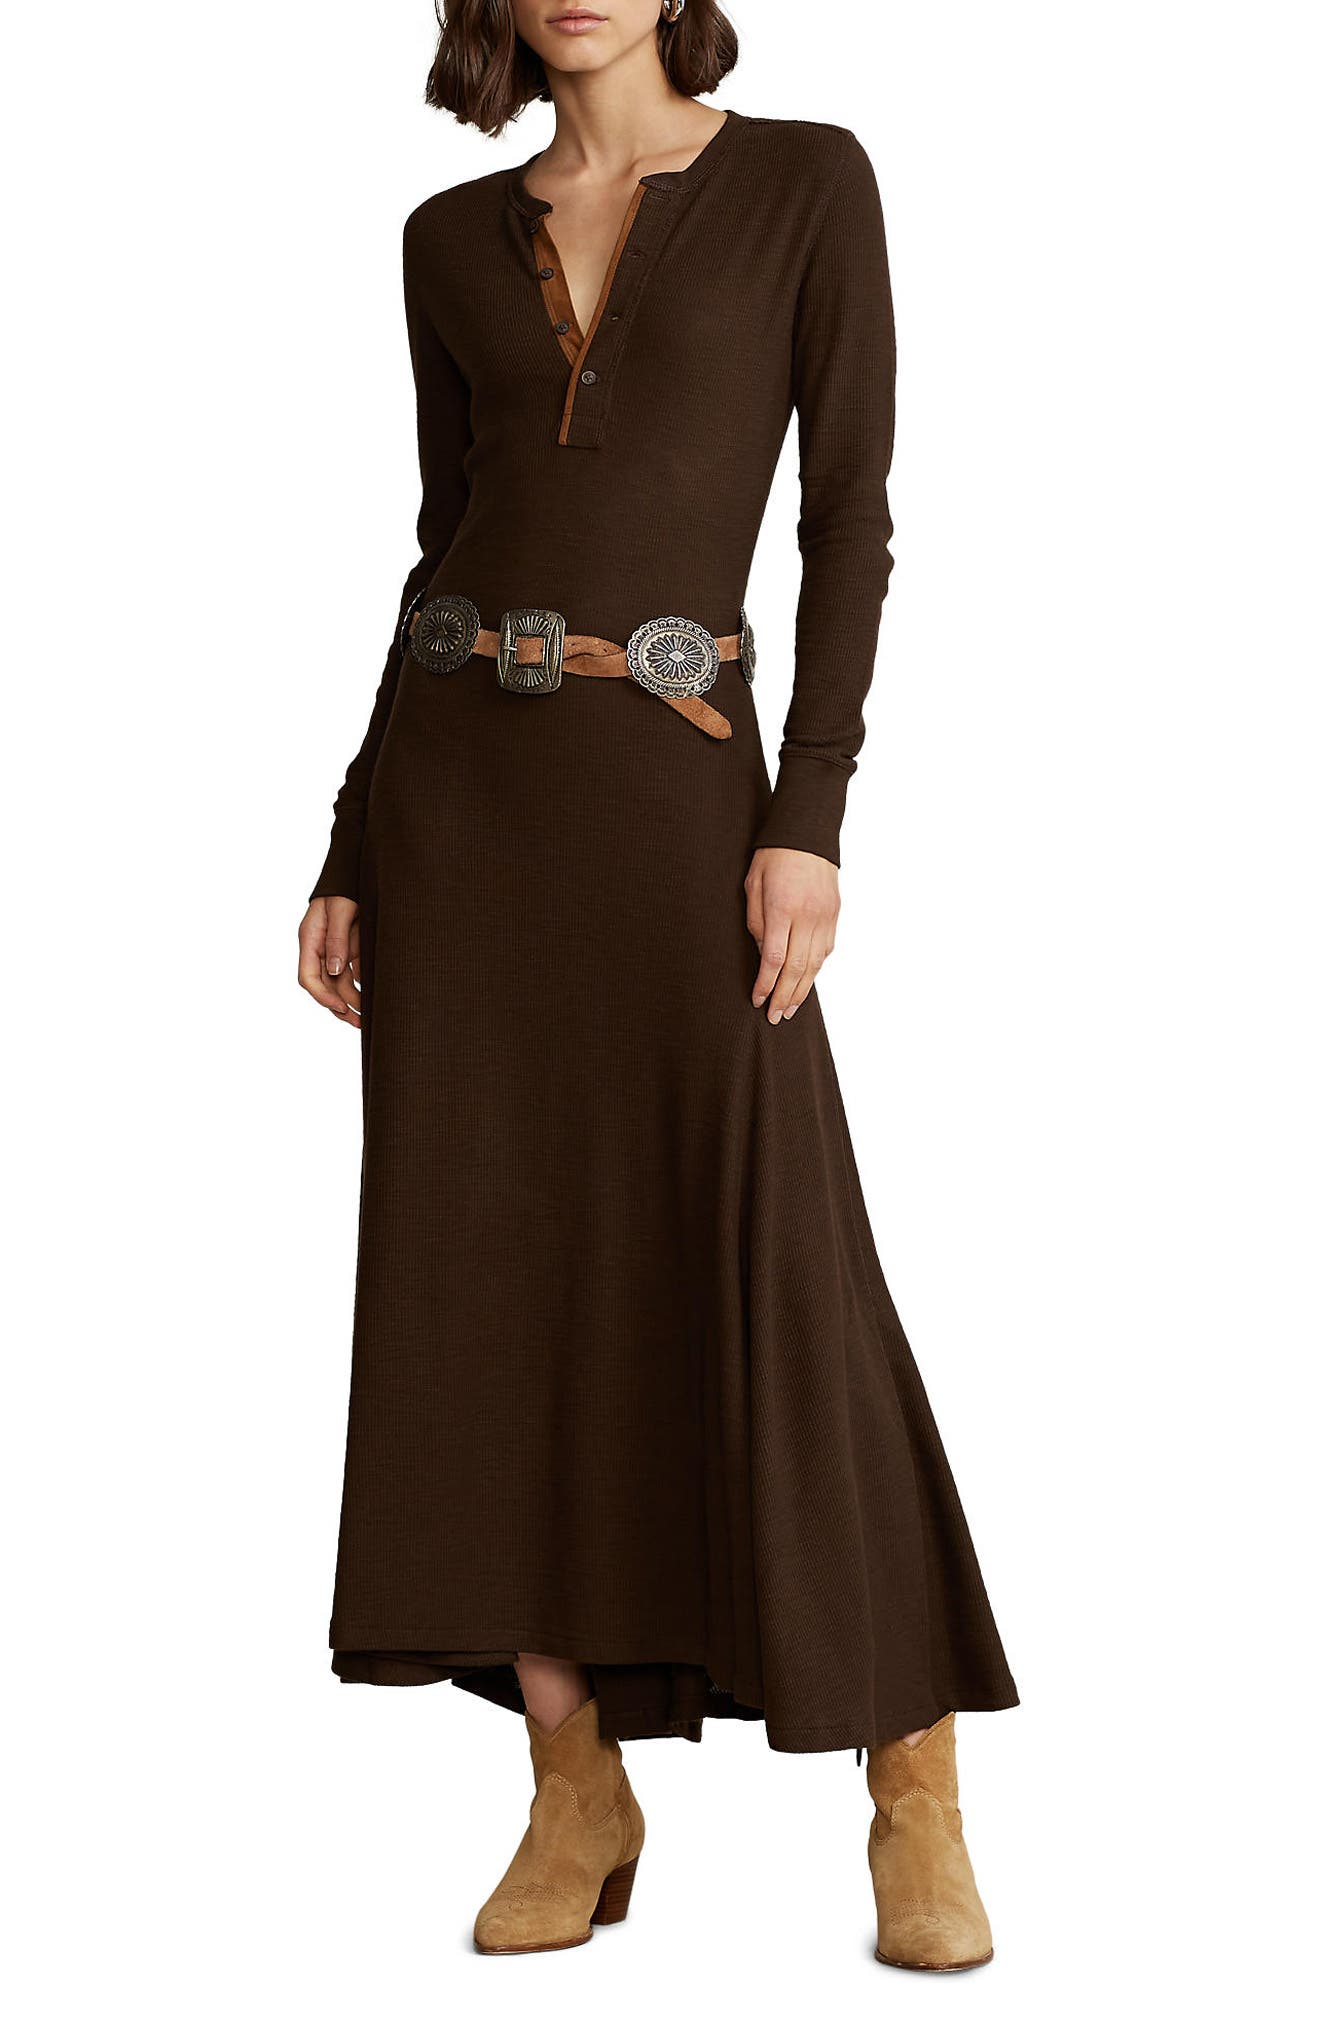 Vintage Western Wear Clothing, Outfit Ideas Womens Polo Ralph Lauren Waffle Long Sleeve Henley Dress Size XX-Small - Brown $228.00 AT vintagedancer.com